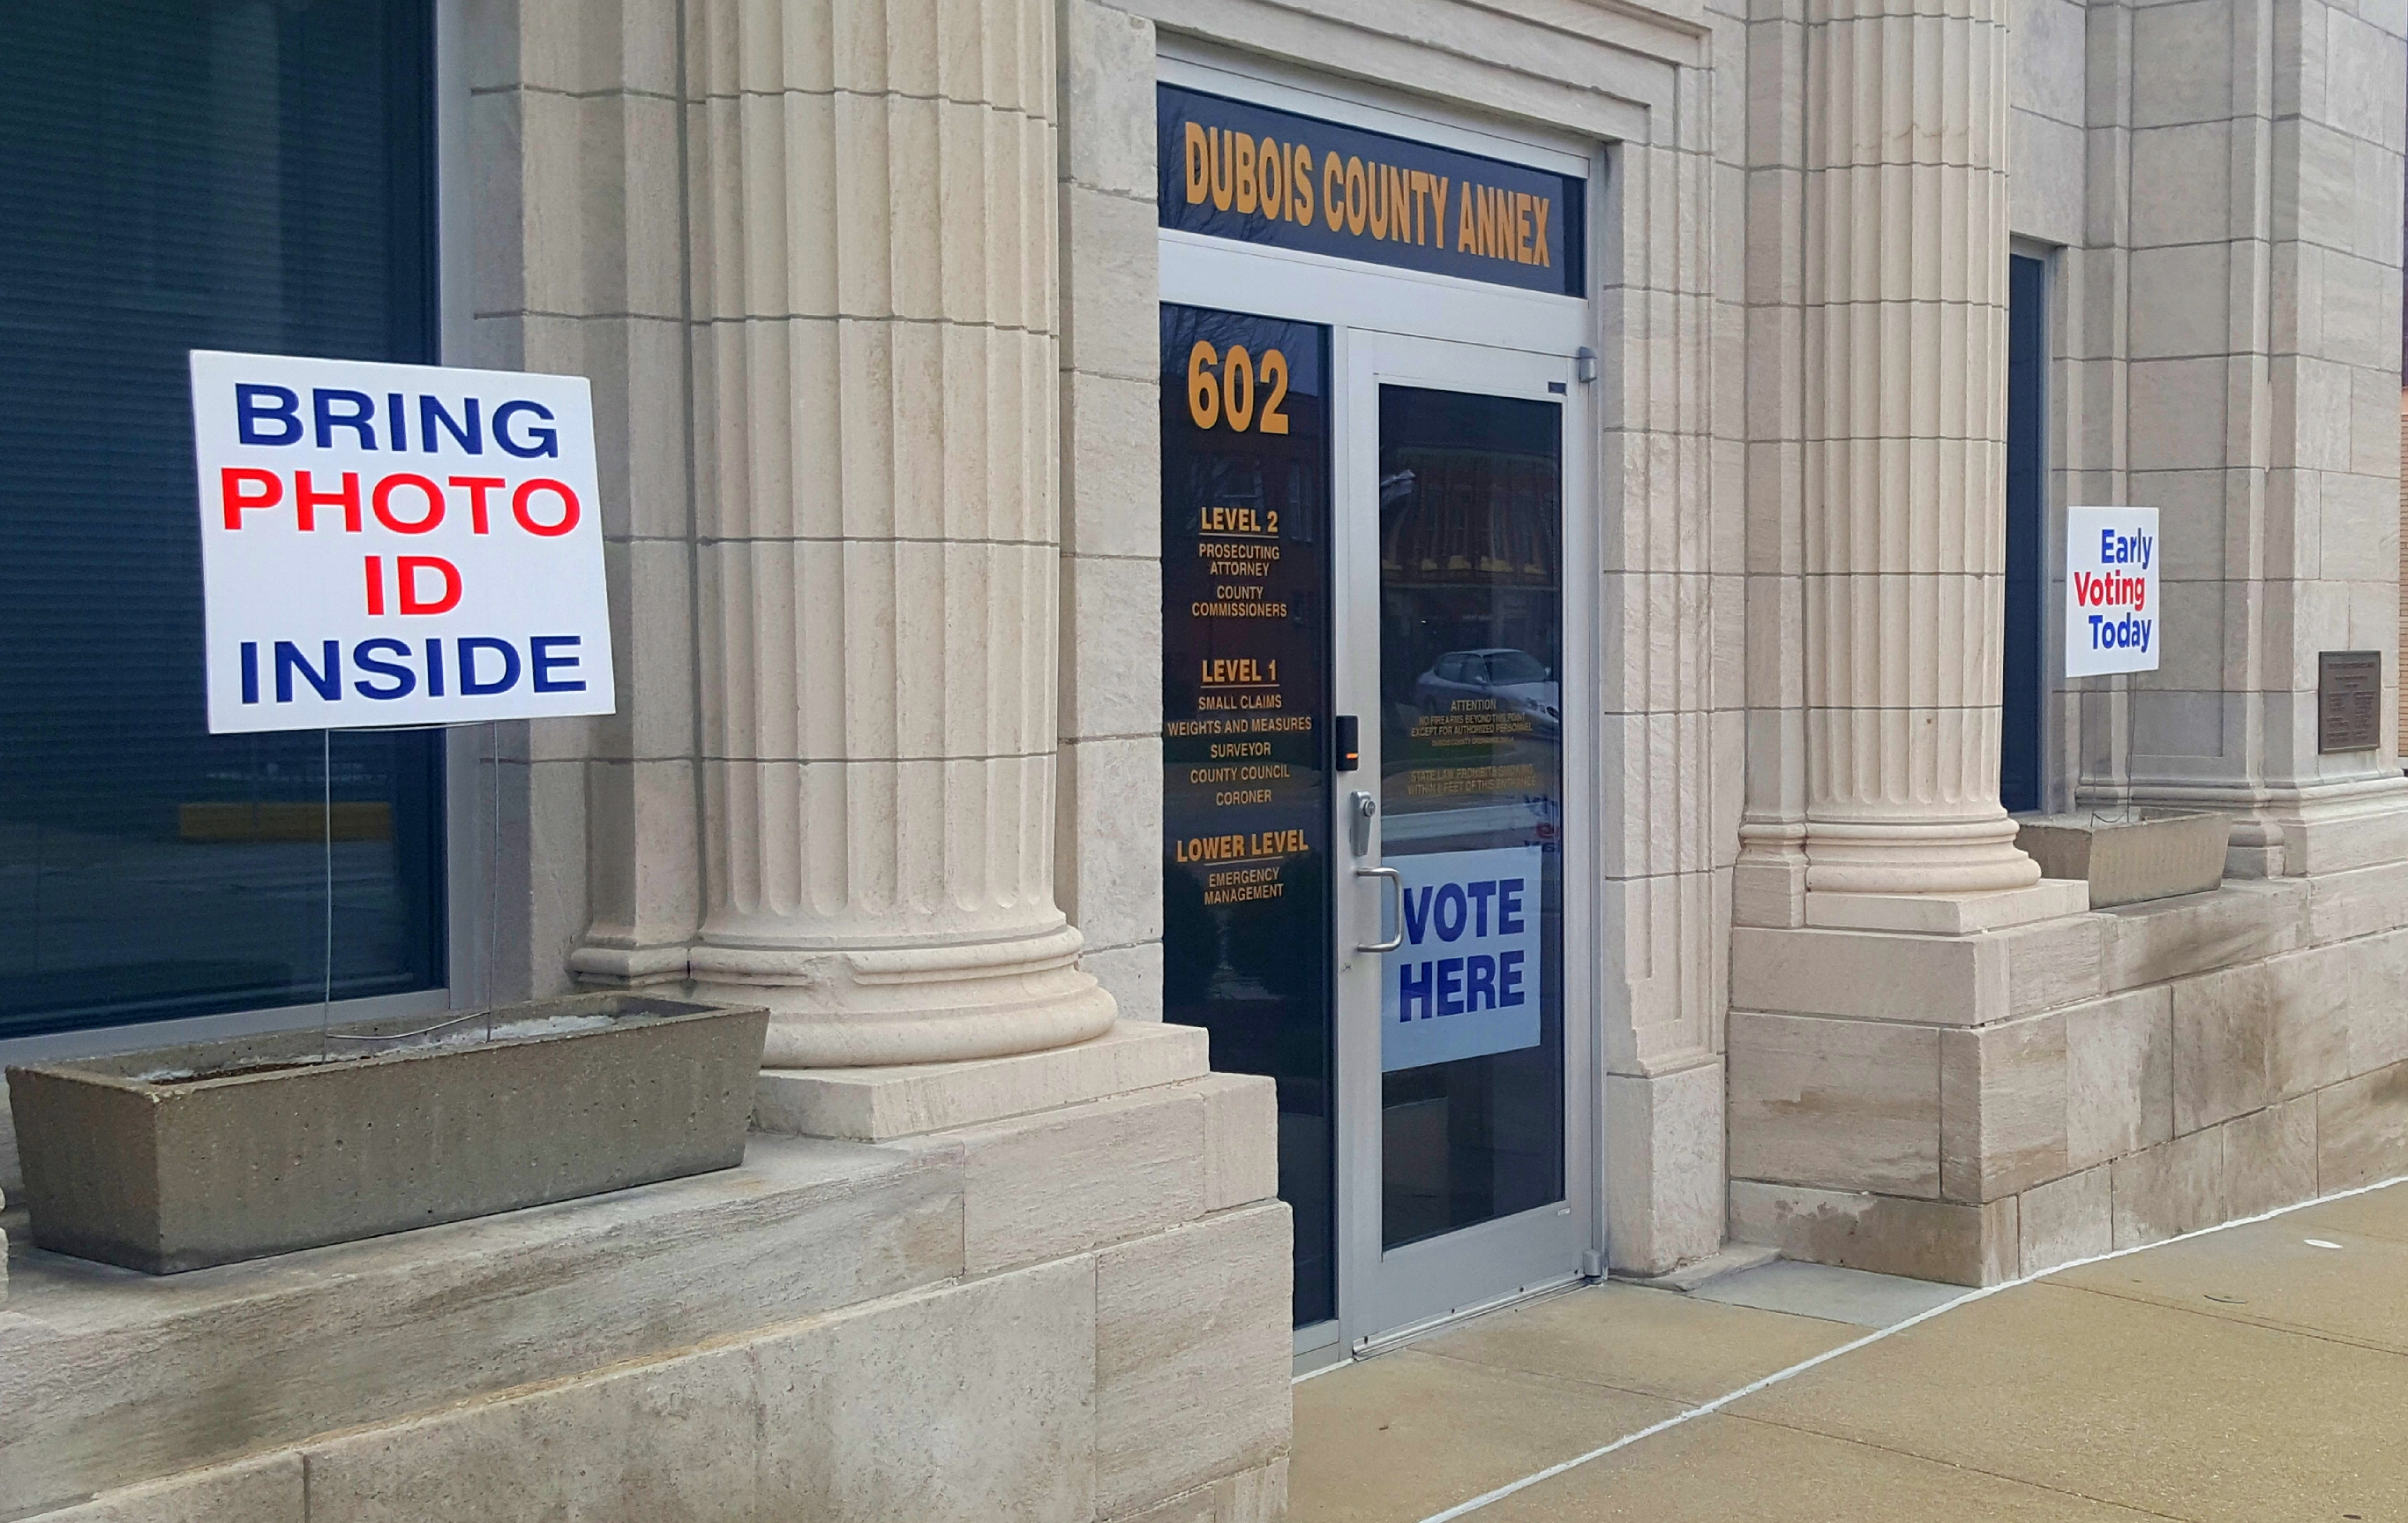 200 Dubois County Voters Have Cast an Early In-Person Ballot in Next Week's Primary